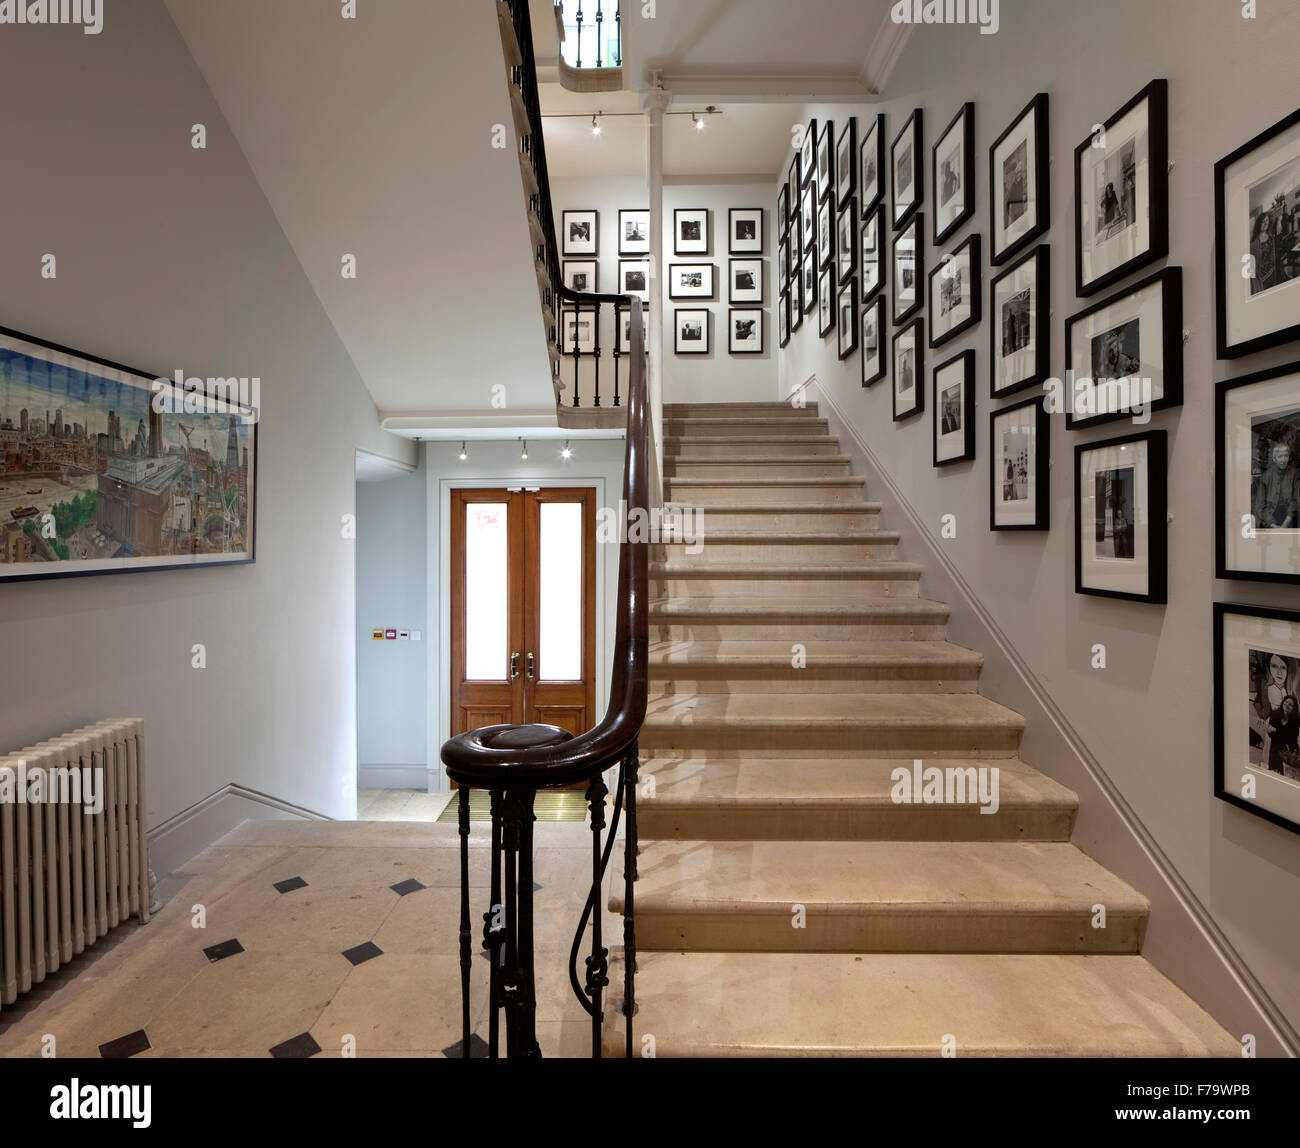 Keepers House, Royal Academy, London. Entrance hallway and staircase. Royal Academics pictured. Stock Photo